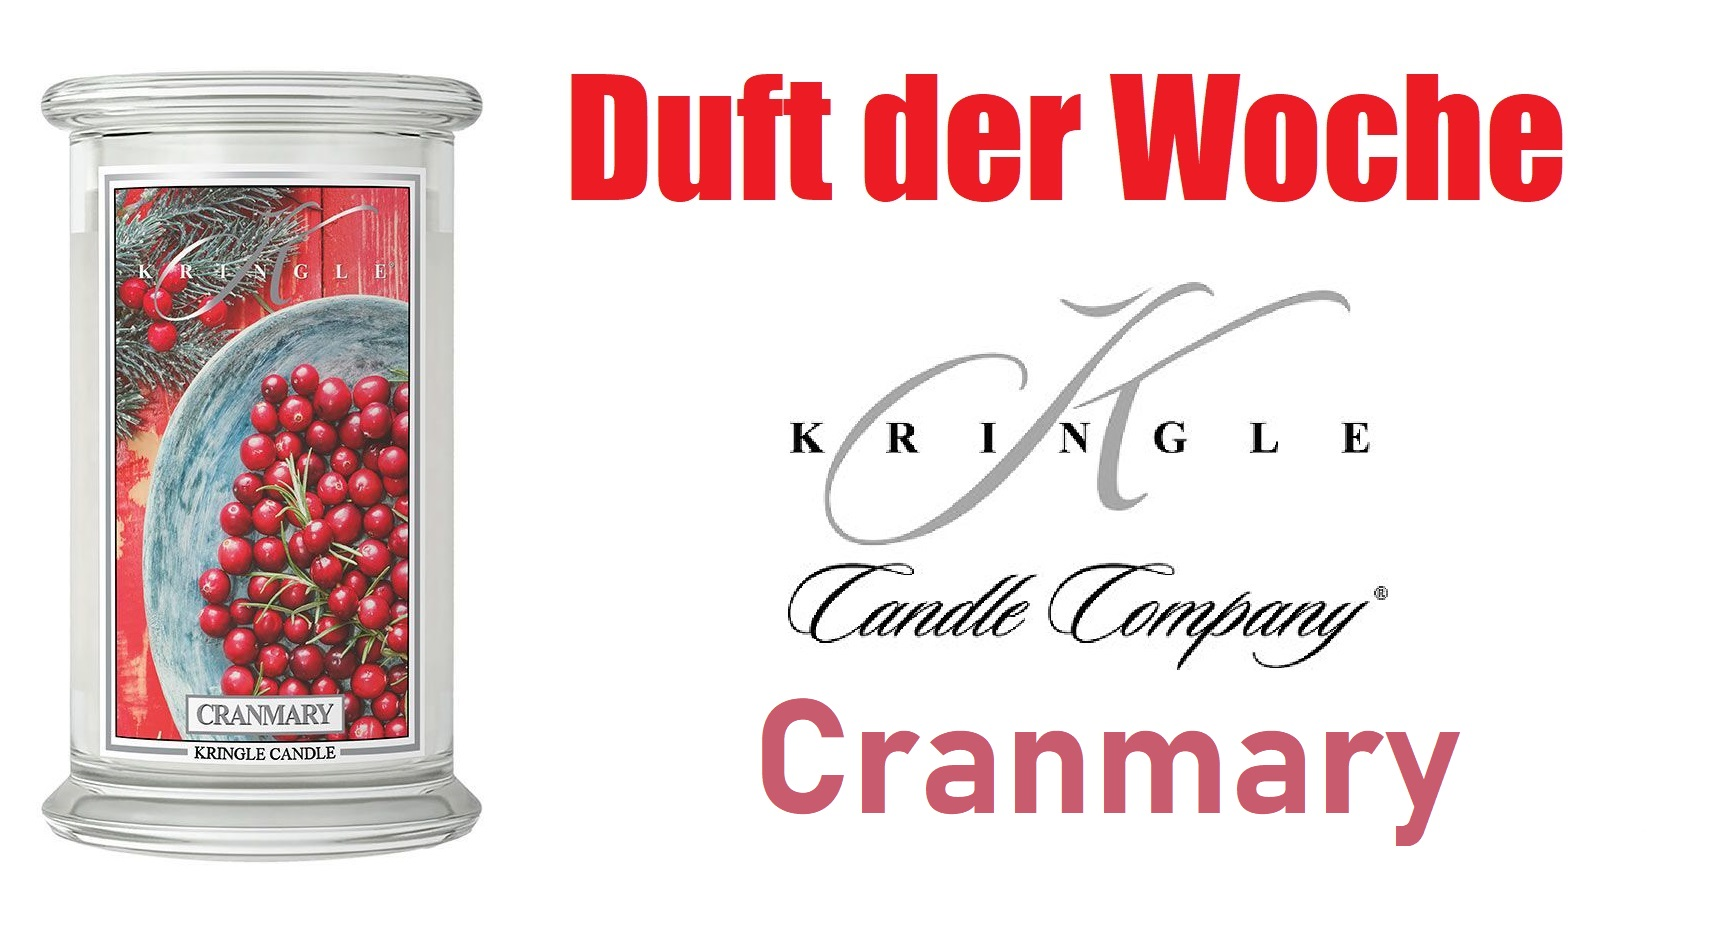 """Duft der Woche - Kringle Candle """"Cranmary"""""""